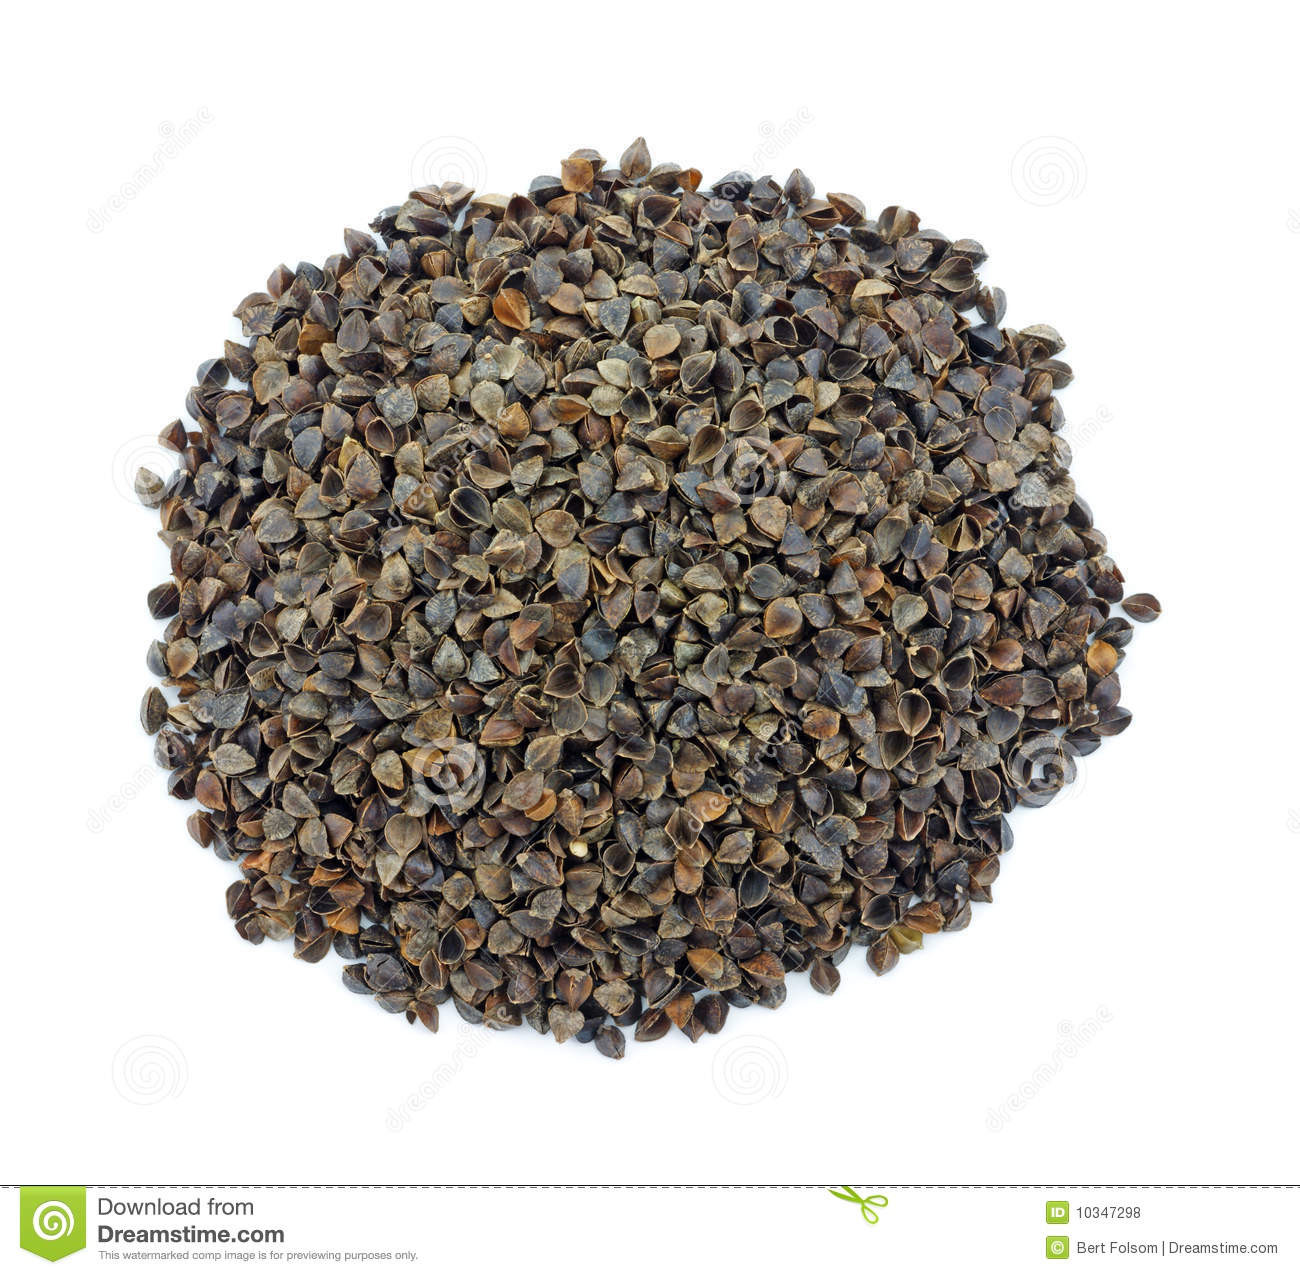 Organic Buckwheat Hulls  Organic Buckwheat Hulls Royalty Free Stock s Image